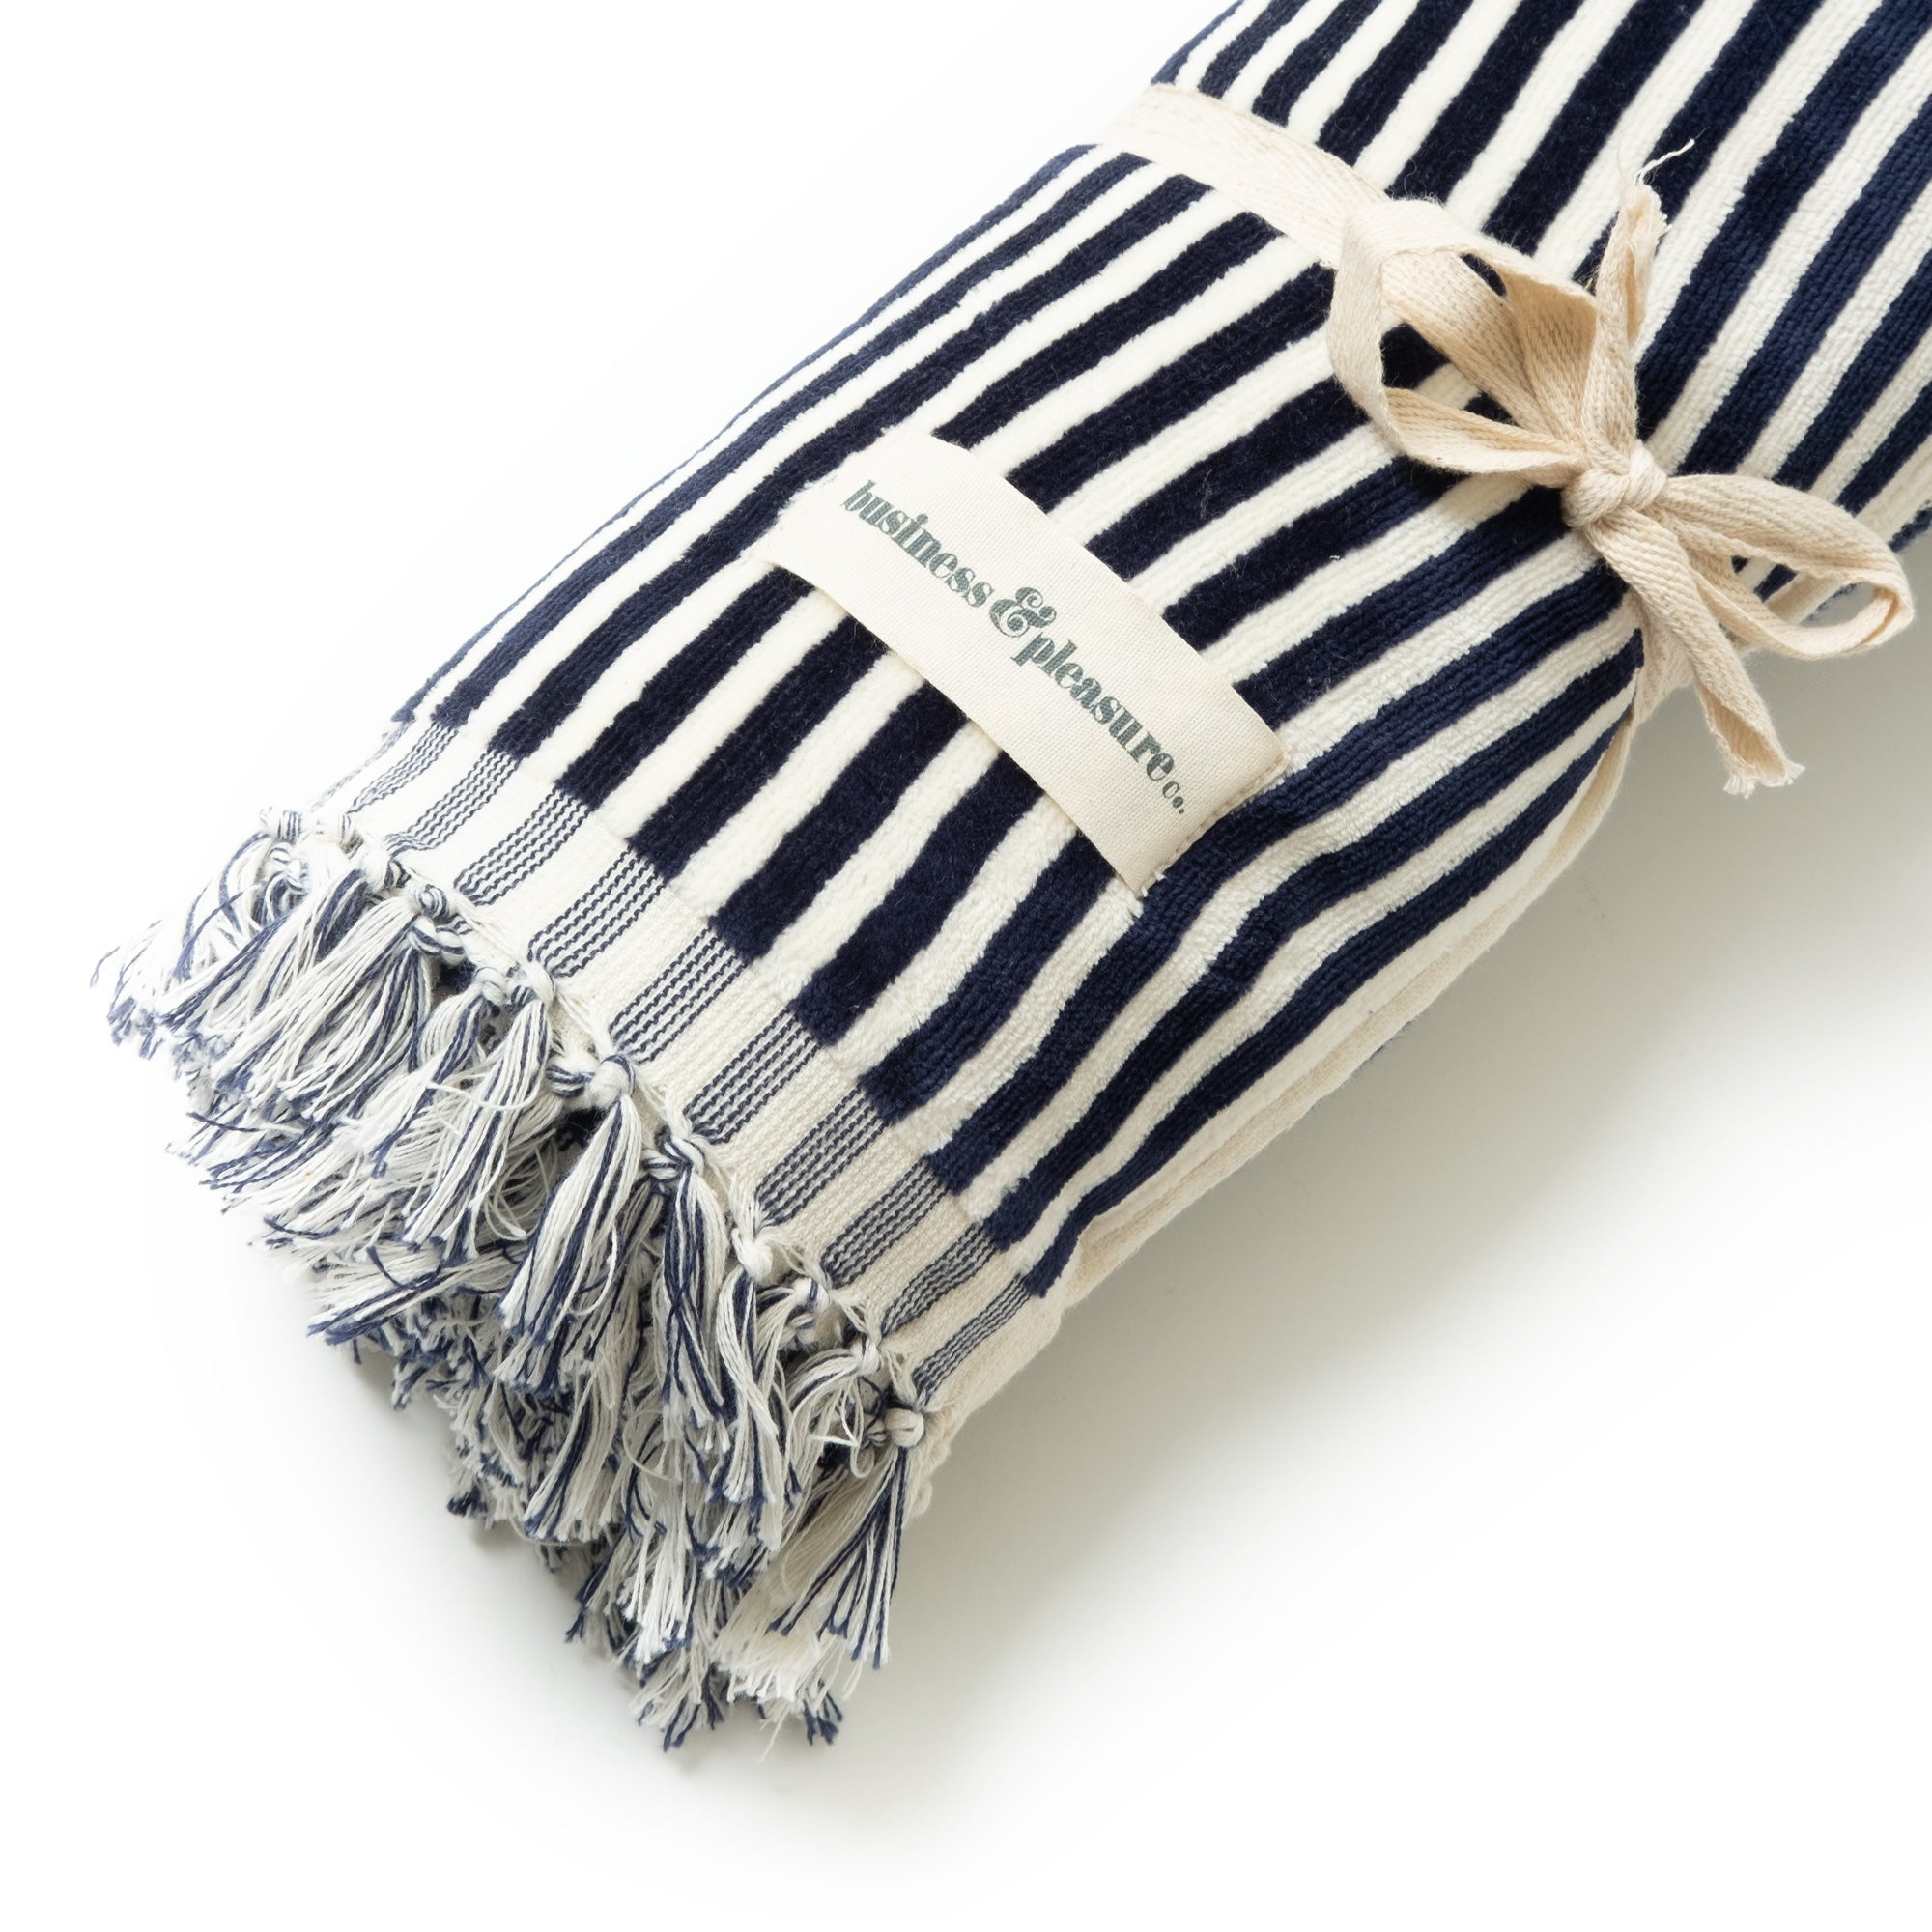 The Beach Towel - Lauren's Navy Stripe